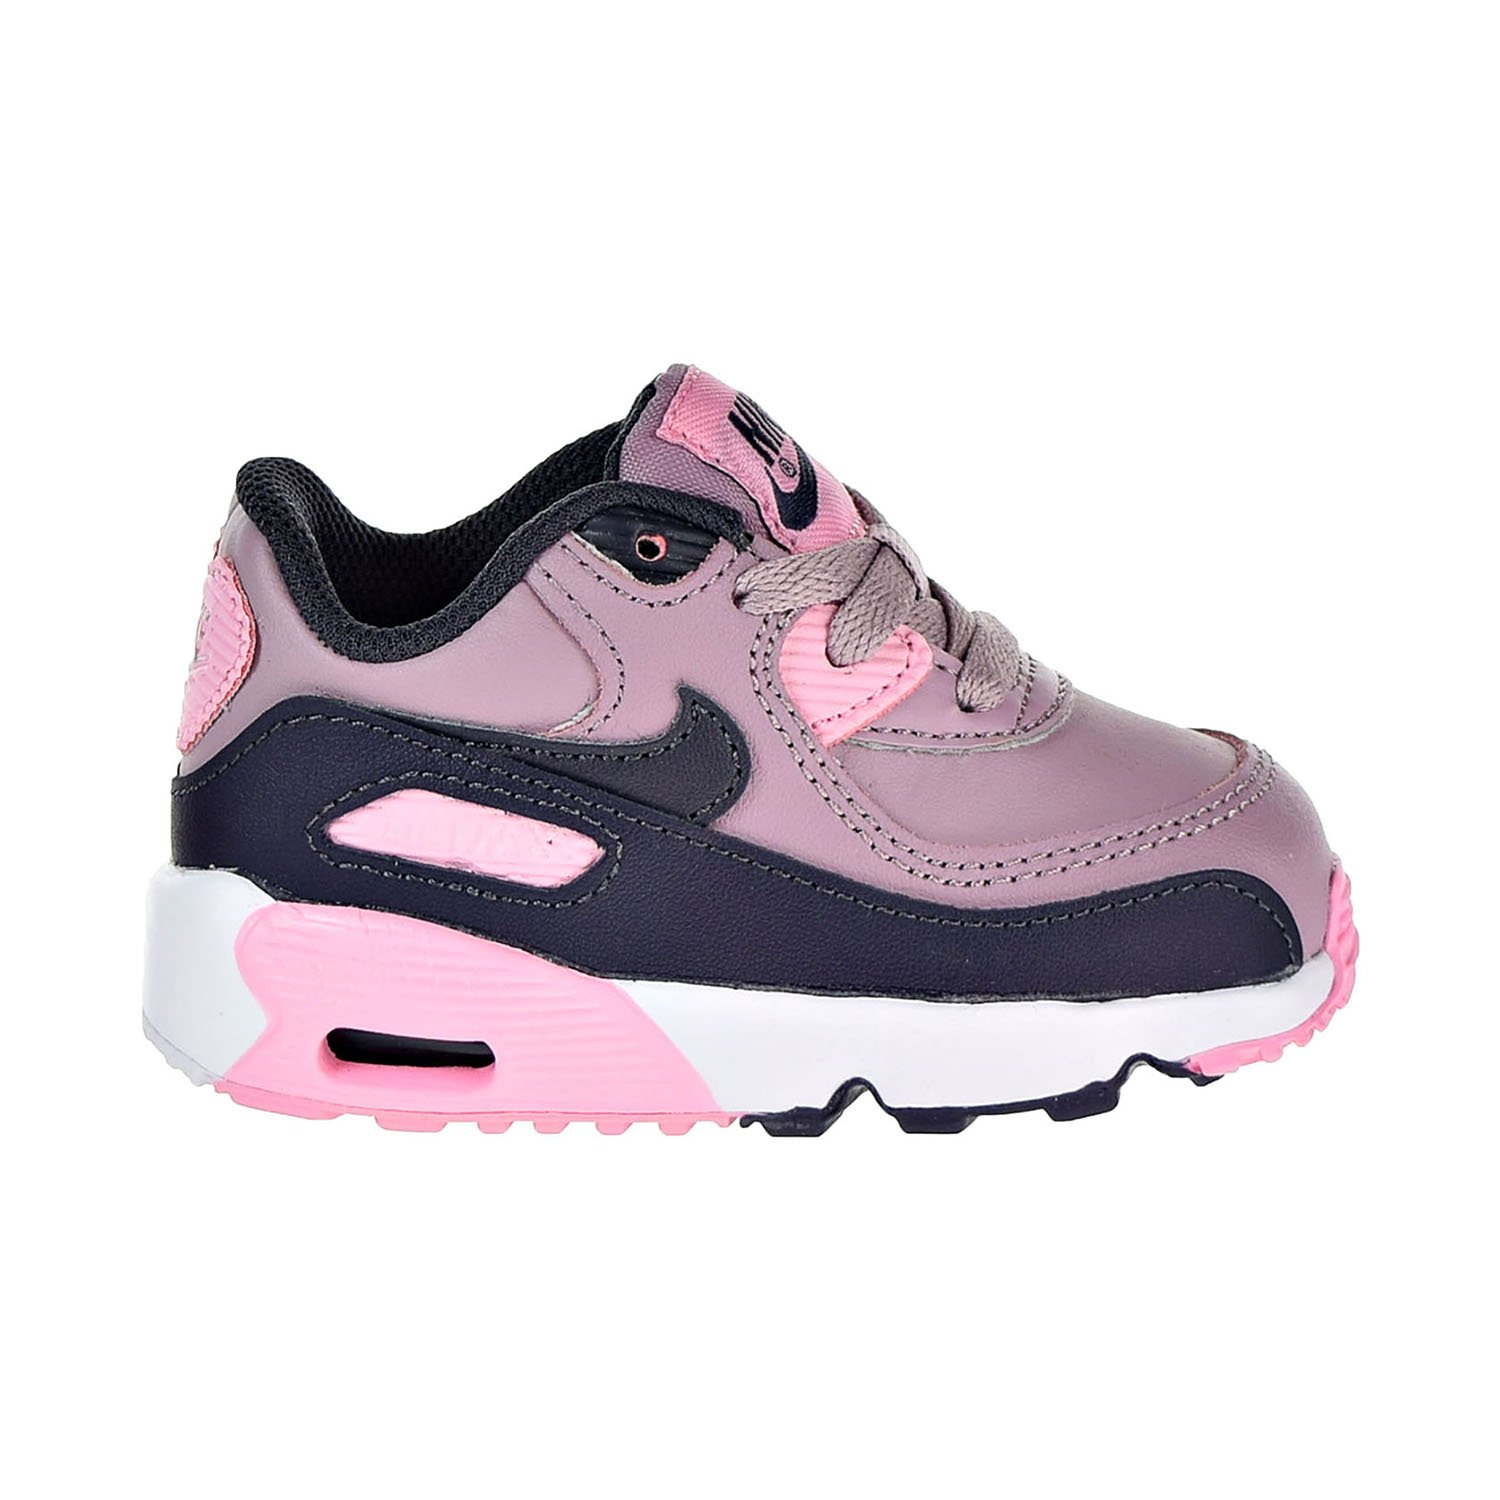 959a3268e38 NIKE Air Max 90 Leather Toddler's Shoes Elemental Rose 833379-602